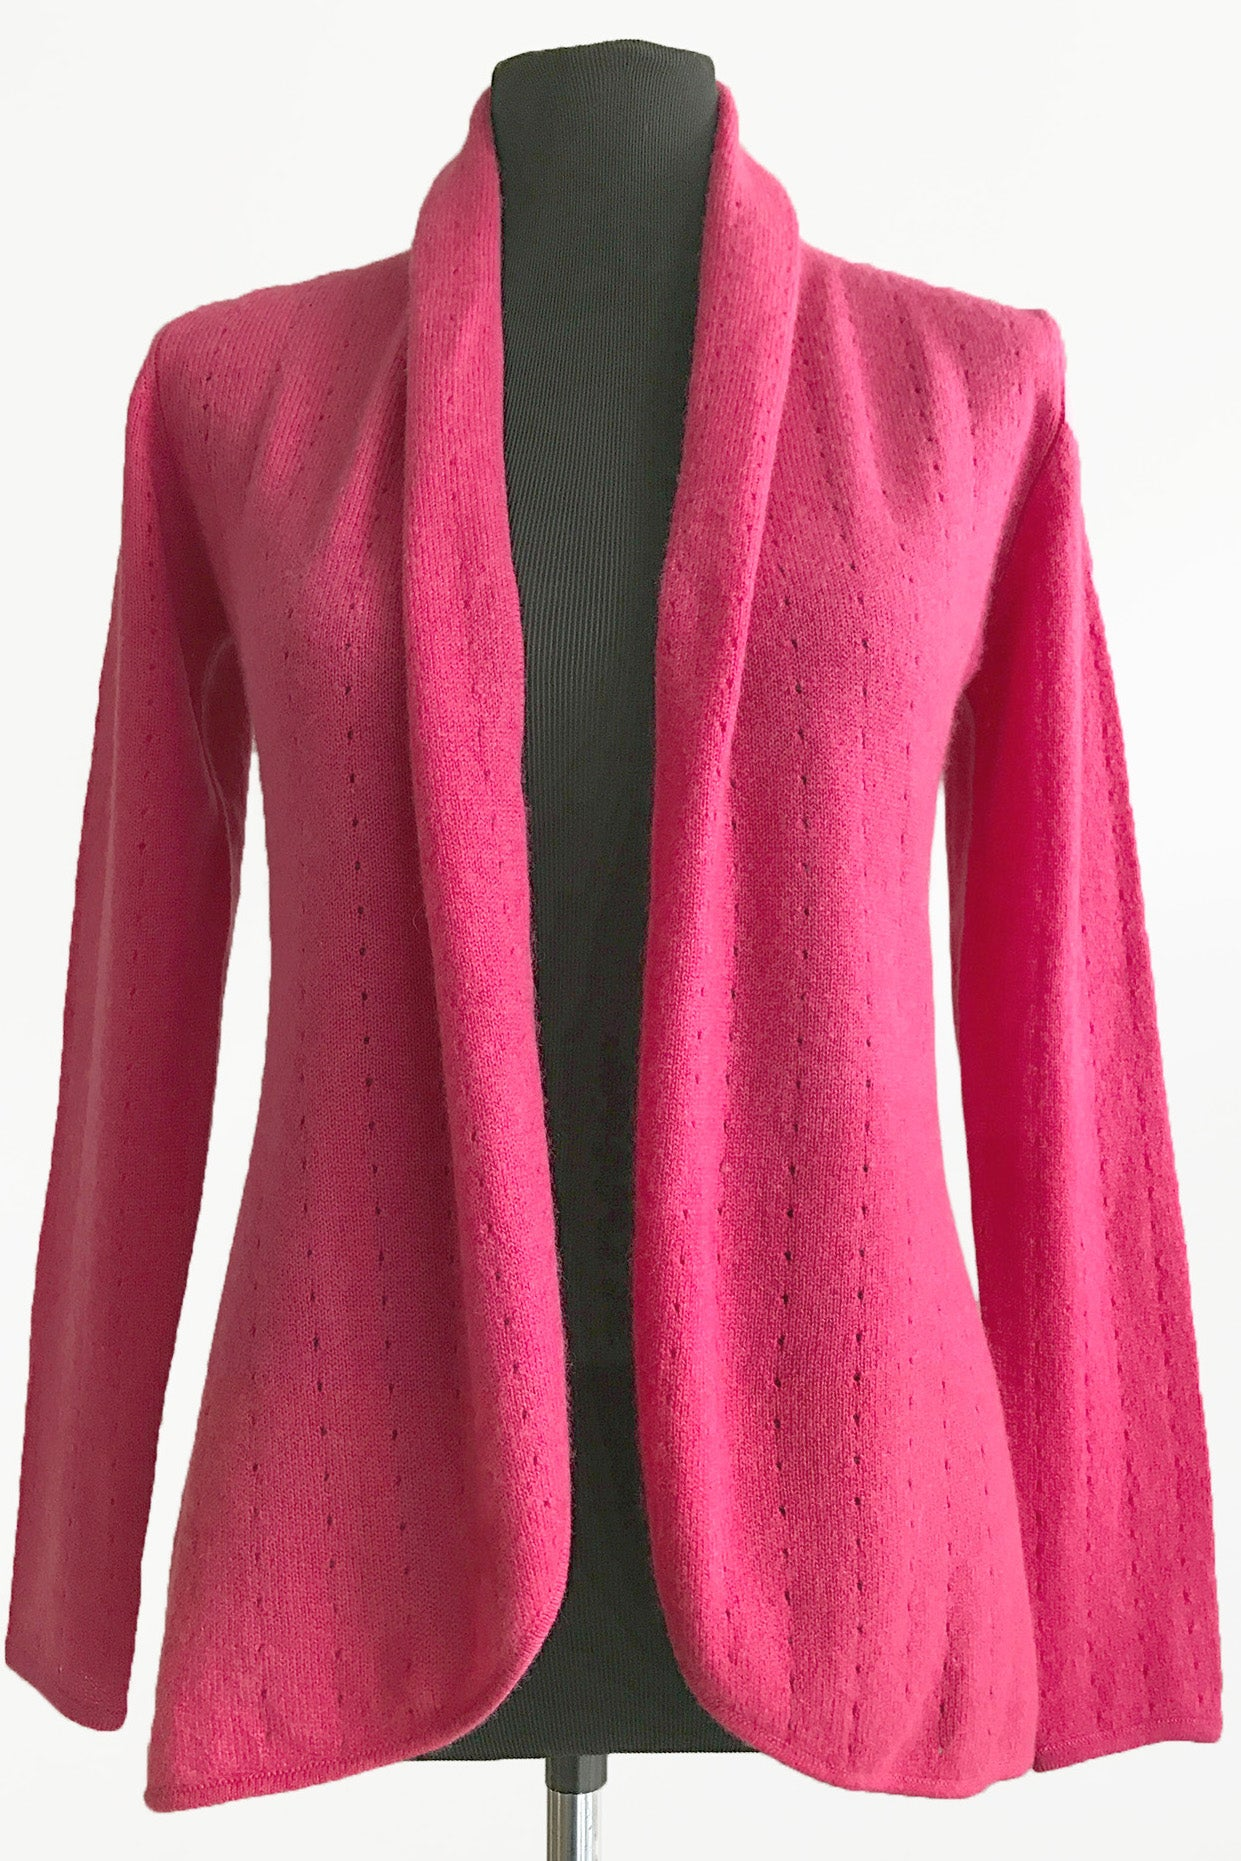 Rose pink womens luxury Cashmere cardigan jacket, ladies light weight summer cardigan, open front tailored jacket, fitted shawl neck collared elegant cardigan sale, open V-neck sweater knit London UK | SEMON Cashmere